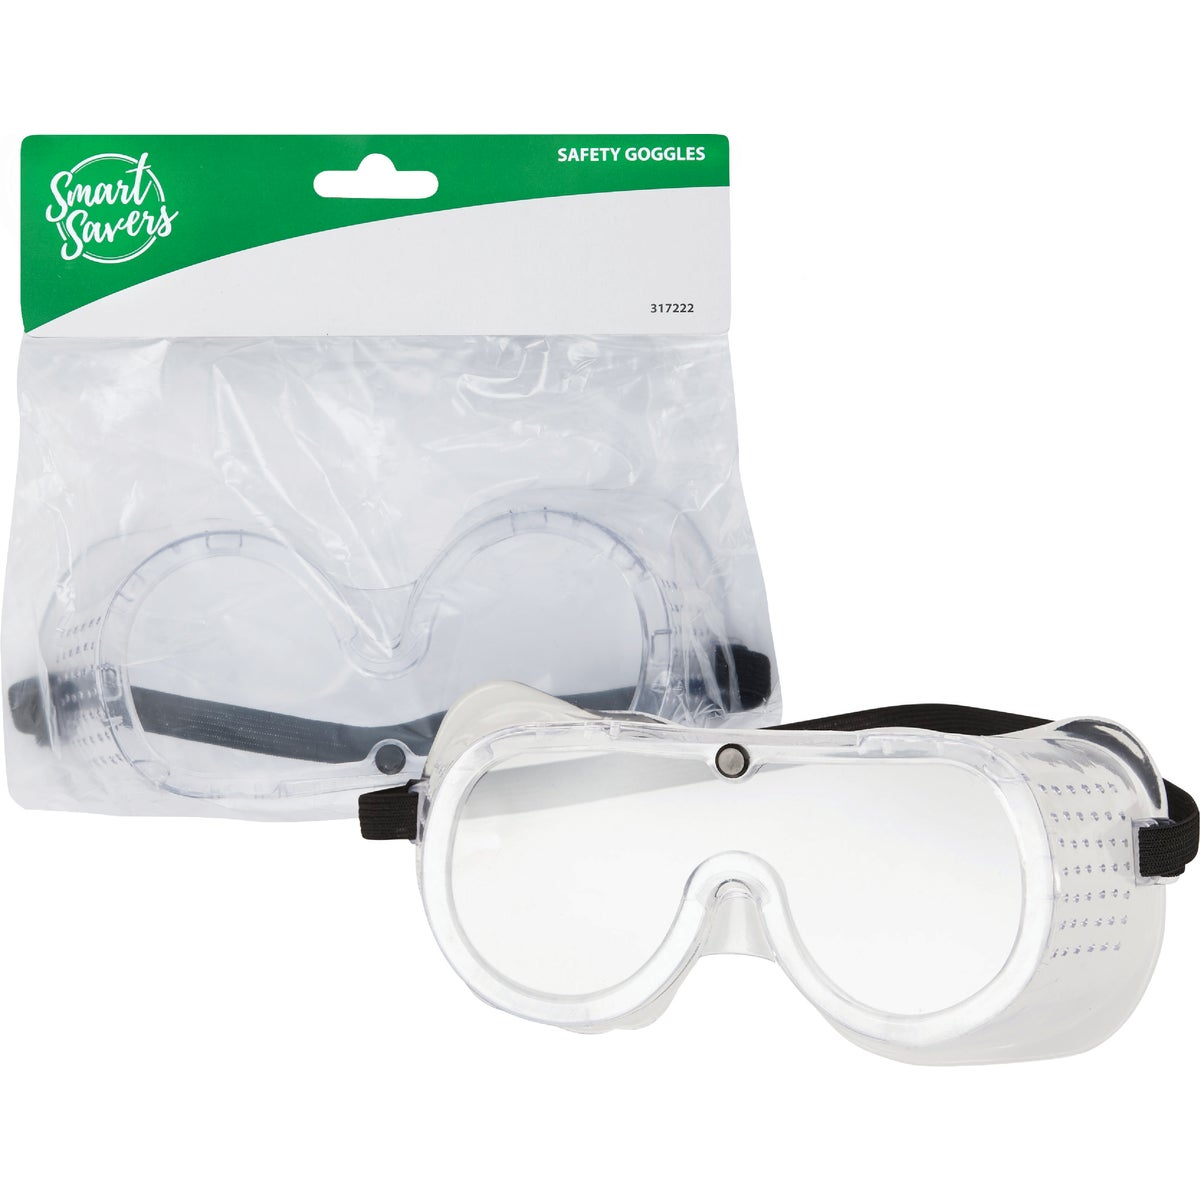 SAFETY GOGGLE - CC101109 by Do it Best